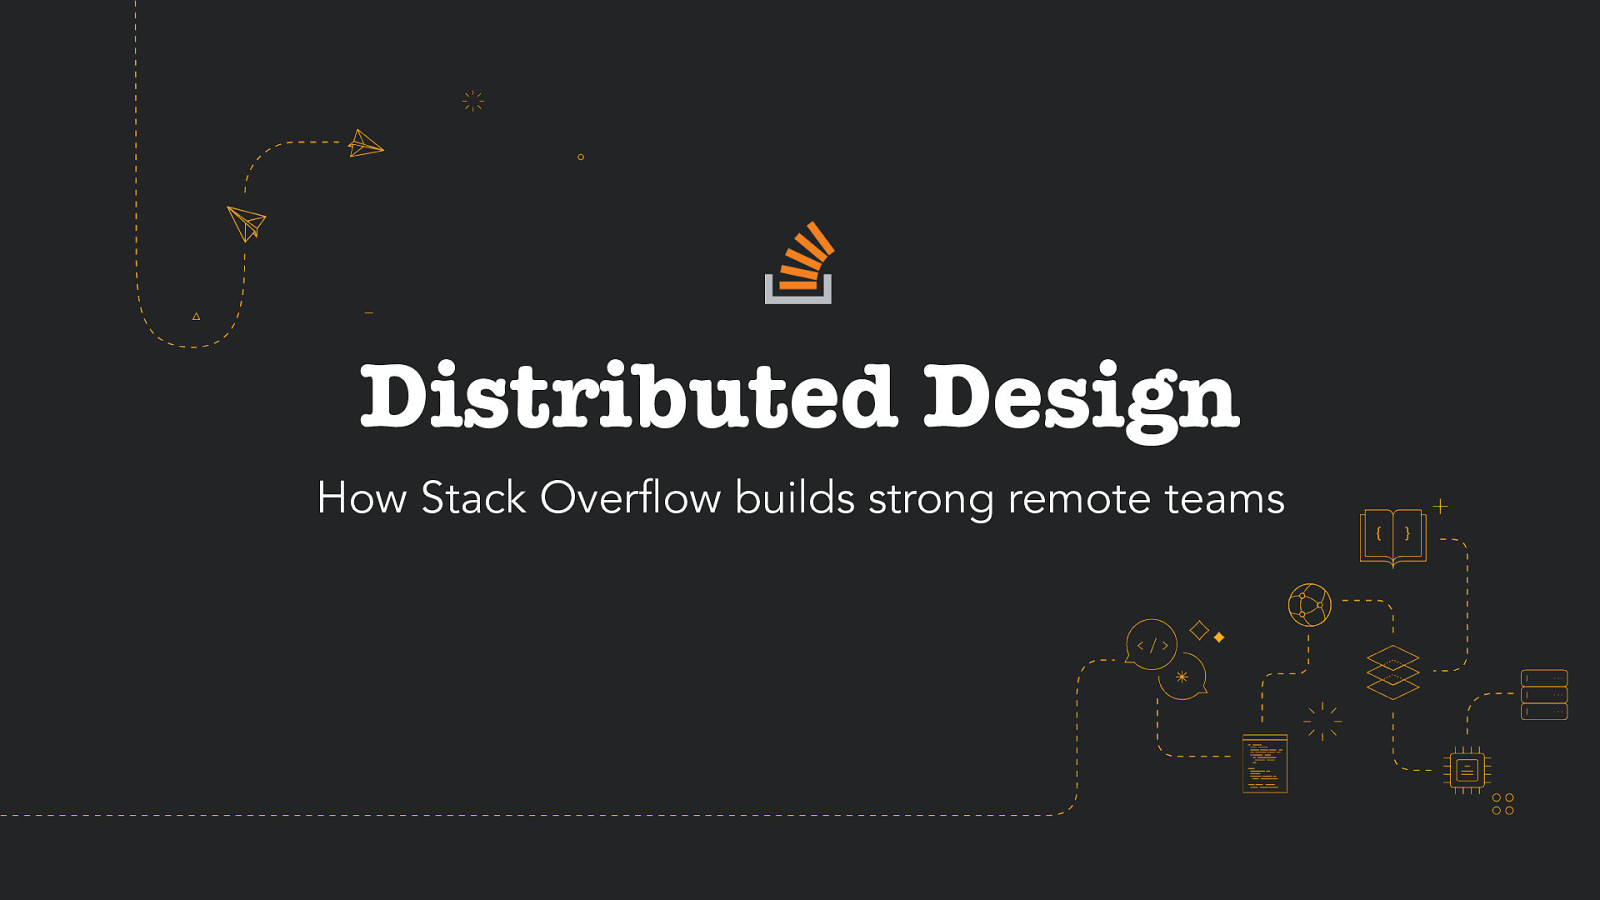 Distributed Design: How Stack Overflow builds strong remote teams